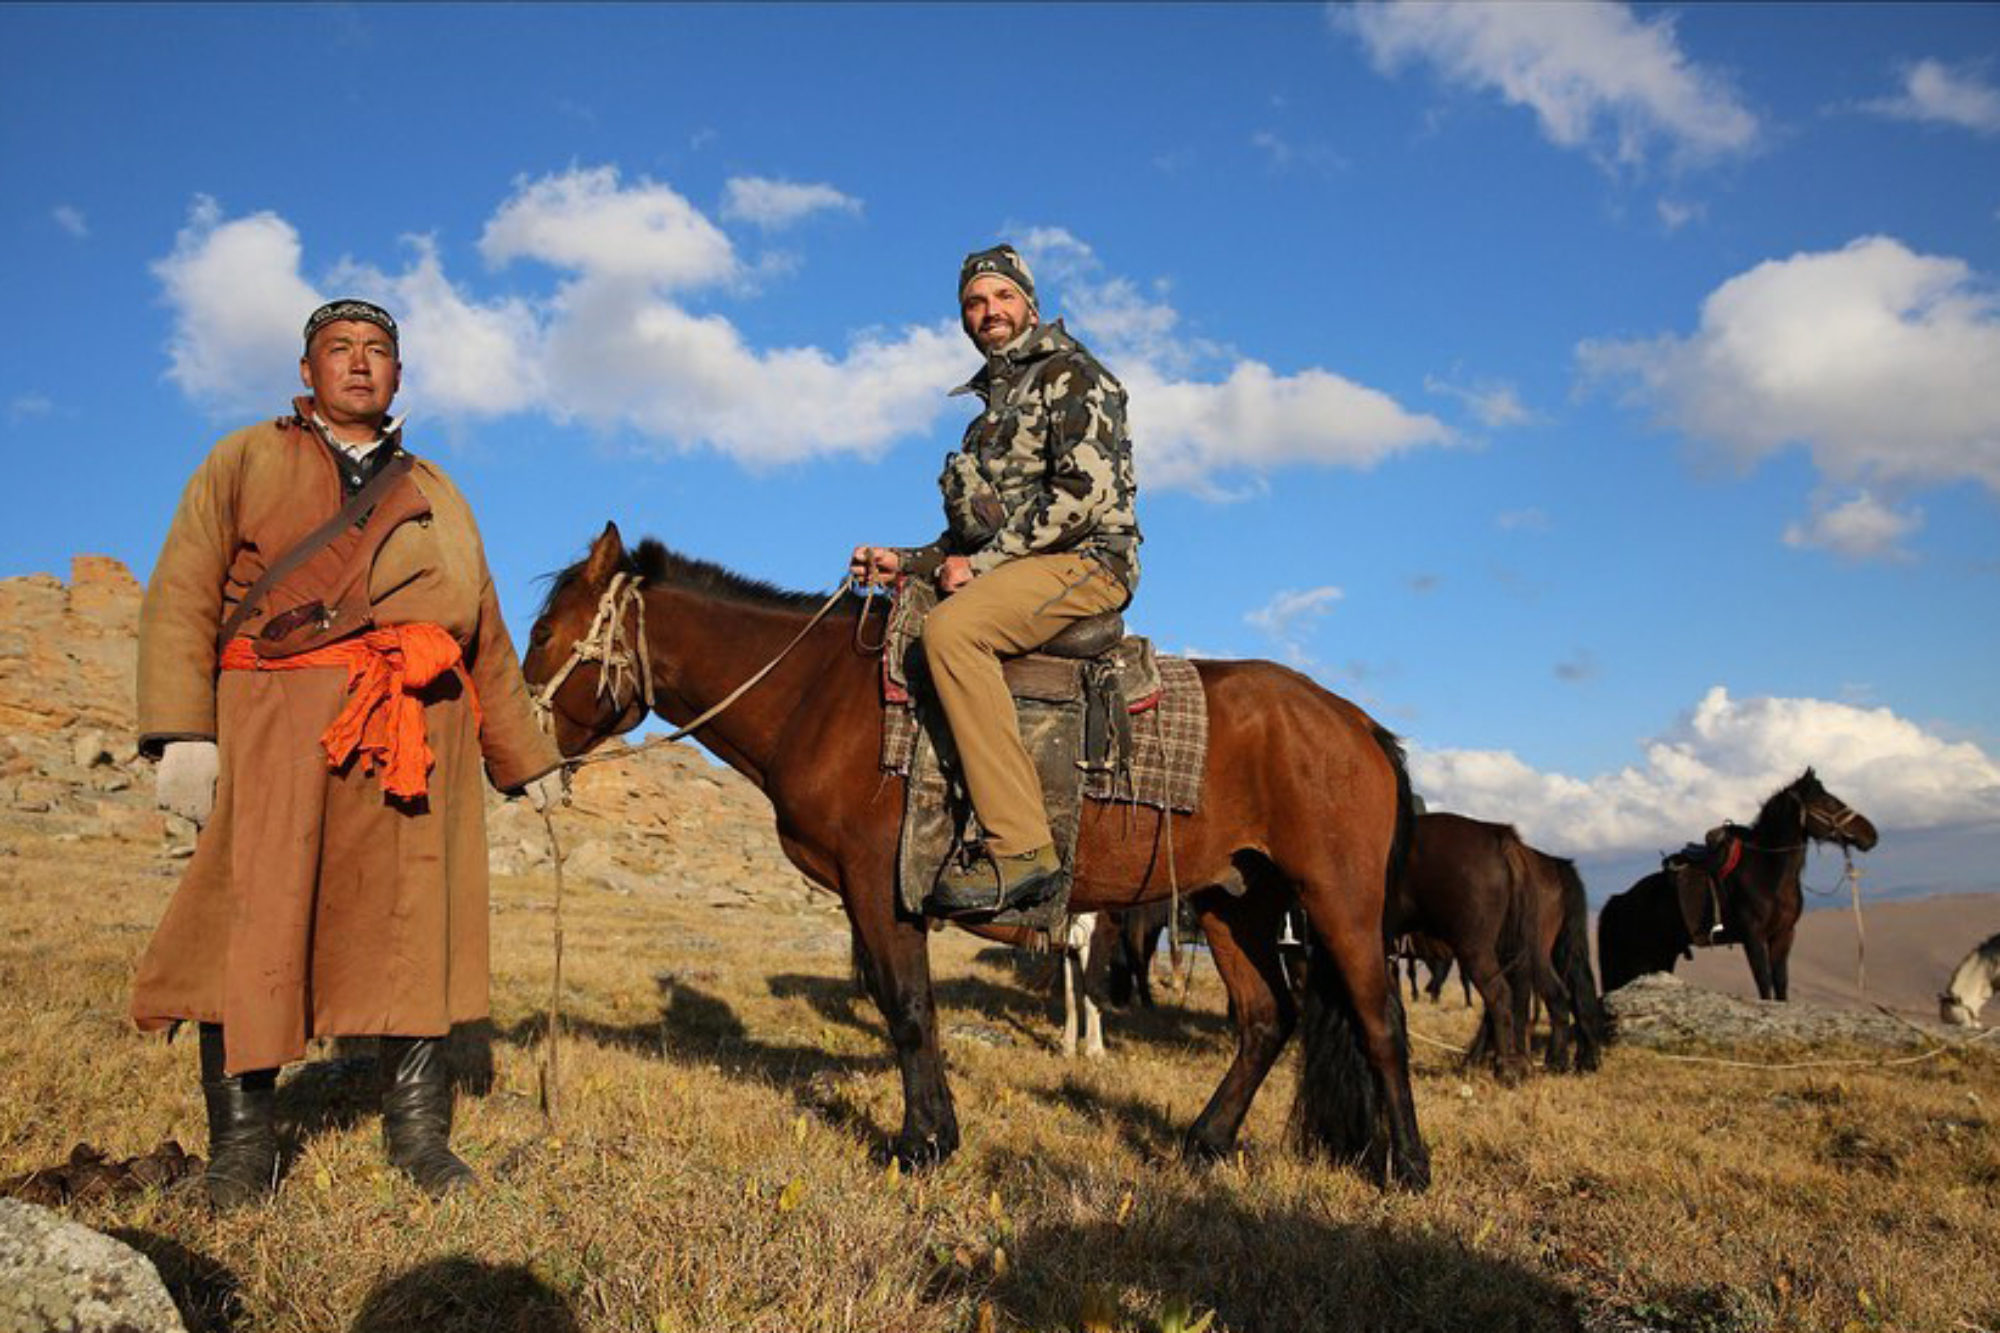 Donald Trump Jr. Went to Mongolia, Got Special Treatment From the Government and Killed an Endangered Sheep